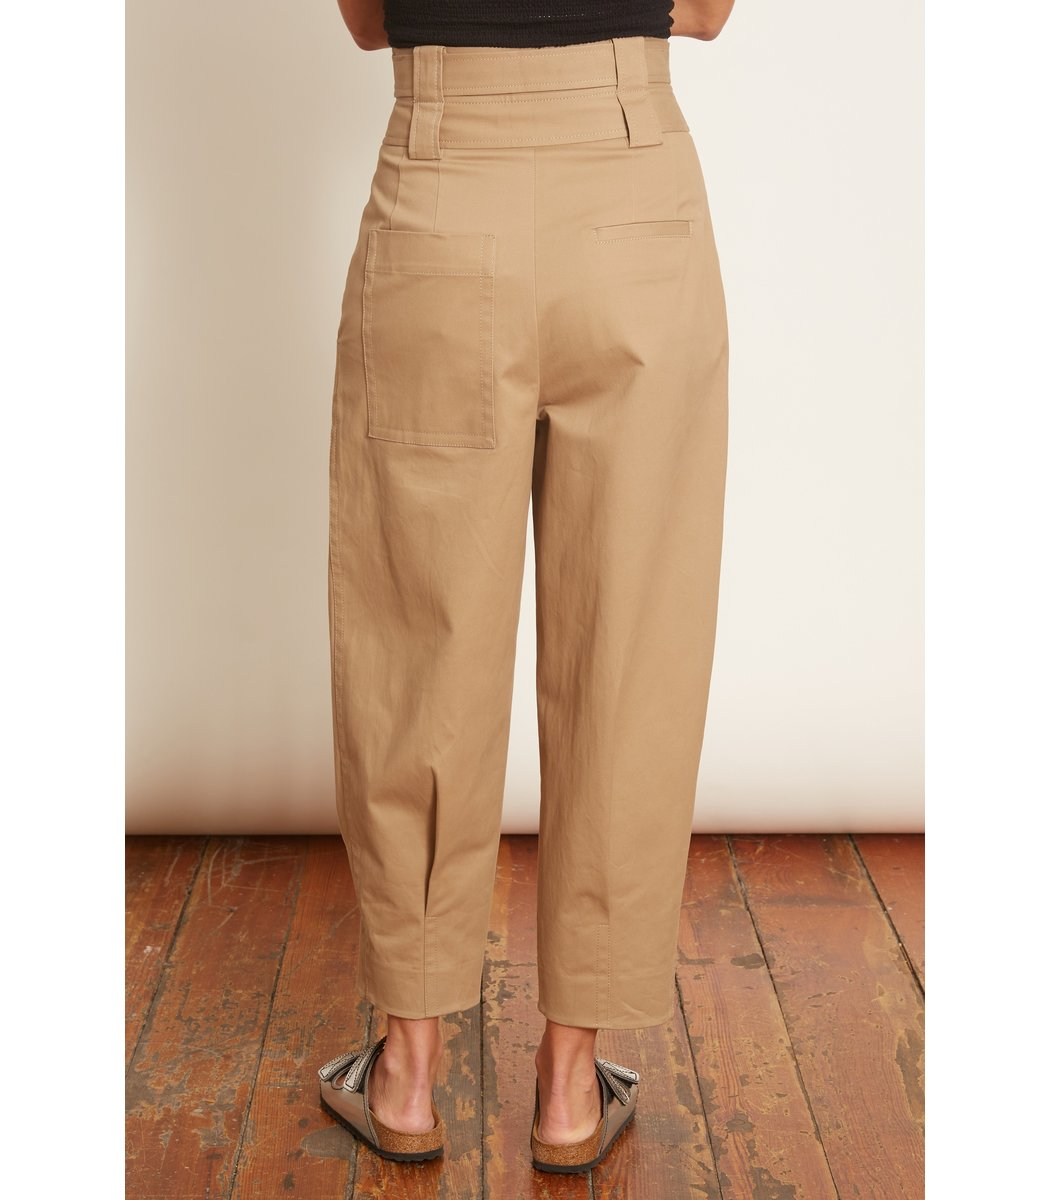 TIBI Cottons Myriam Twill Double Waisted Pant in Khaki